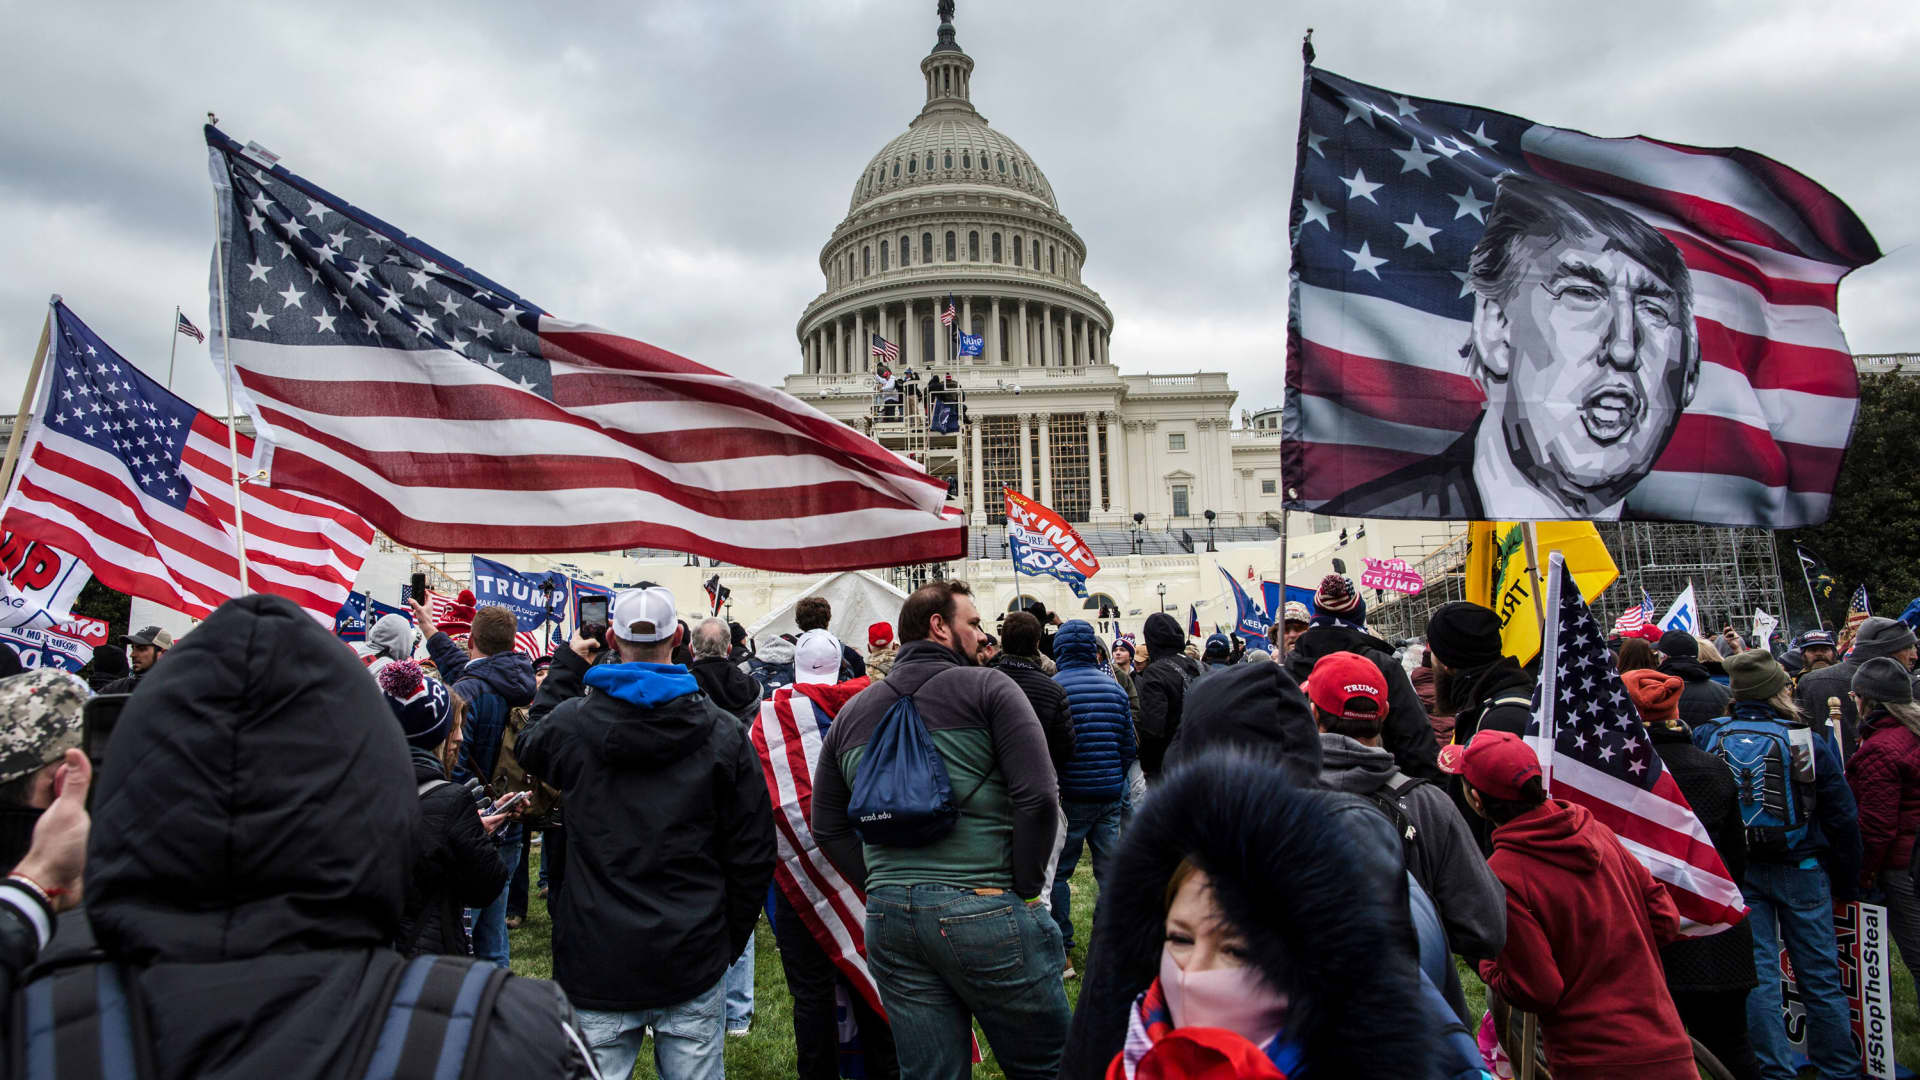 US President Donald Trump's supporters gather outside the Capitol building, January 6, 2021.